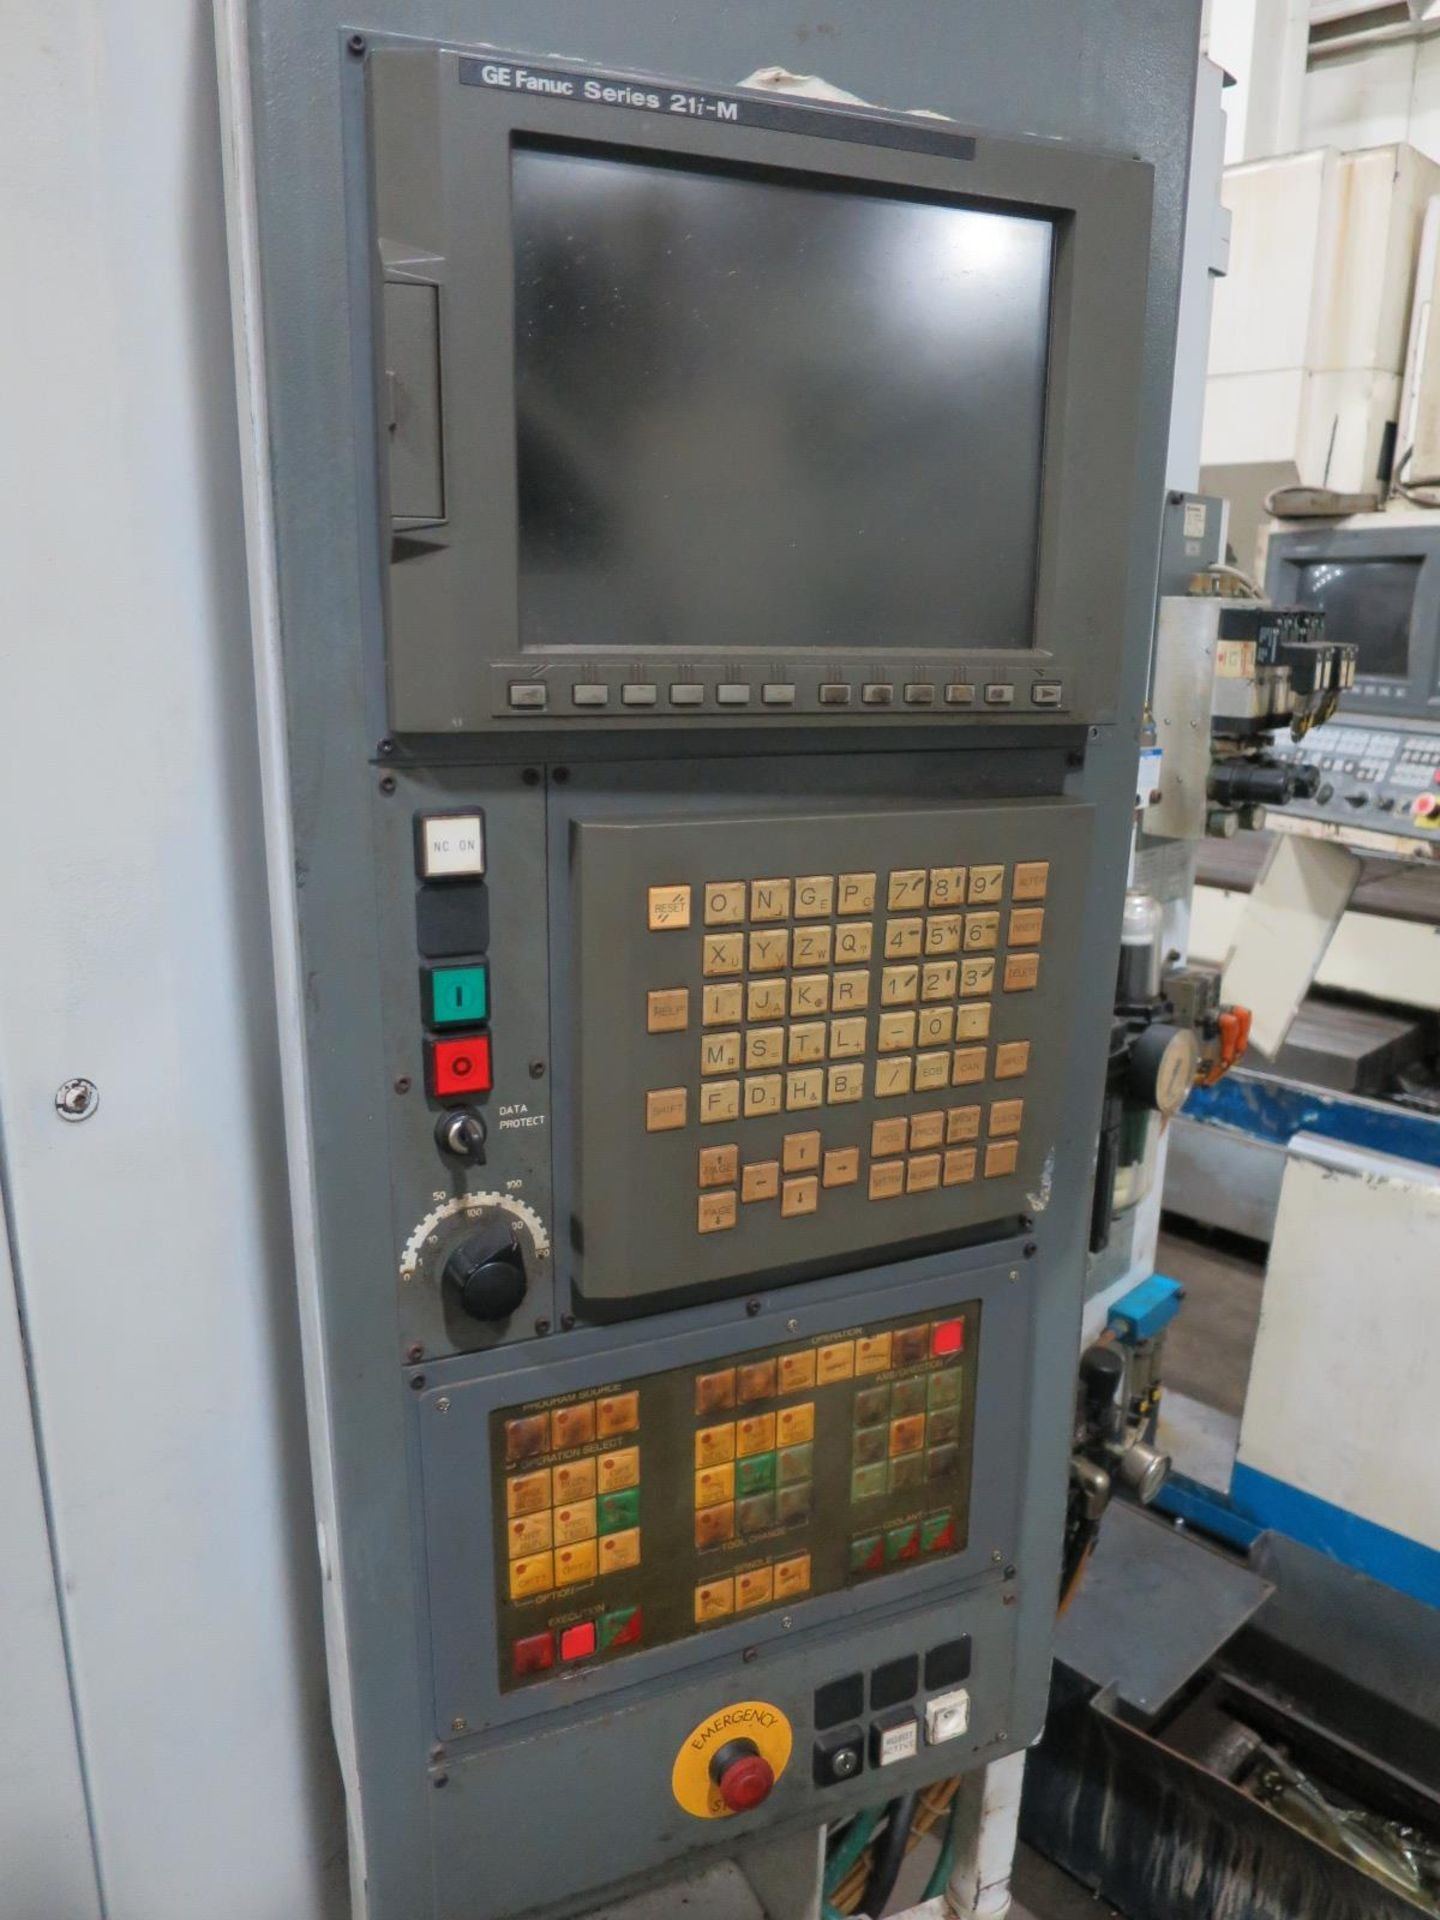 Lot 56 - Chiron FZ08W CNC Vertical Machining Center W/Pallet Changer, S/N 484-54, New 2001